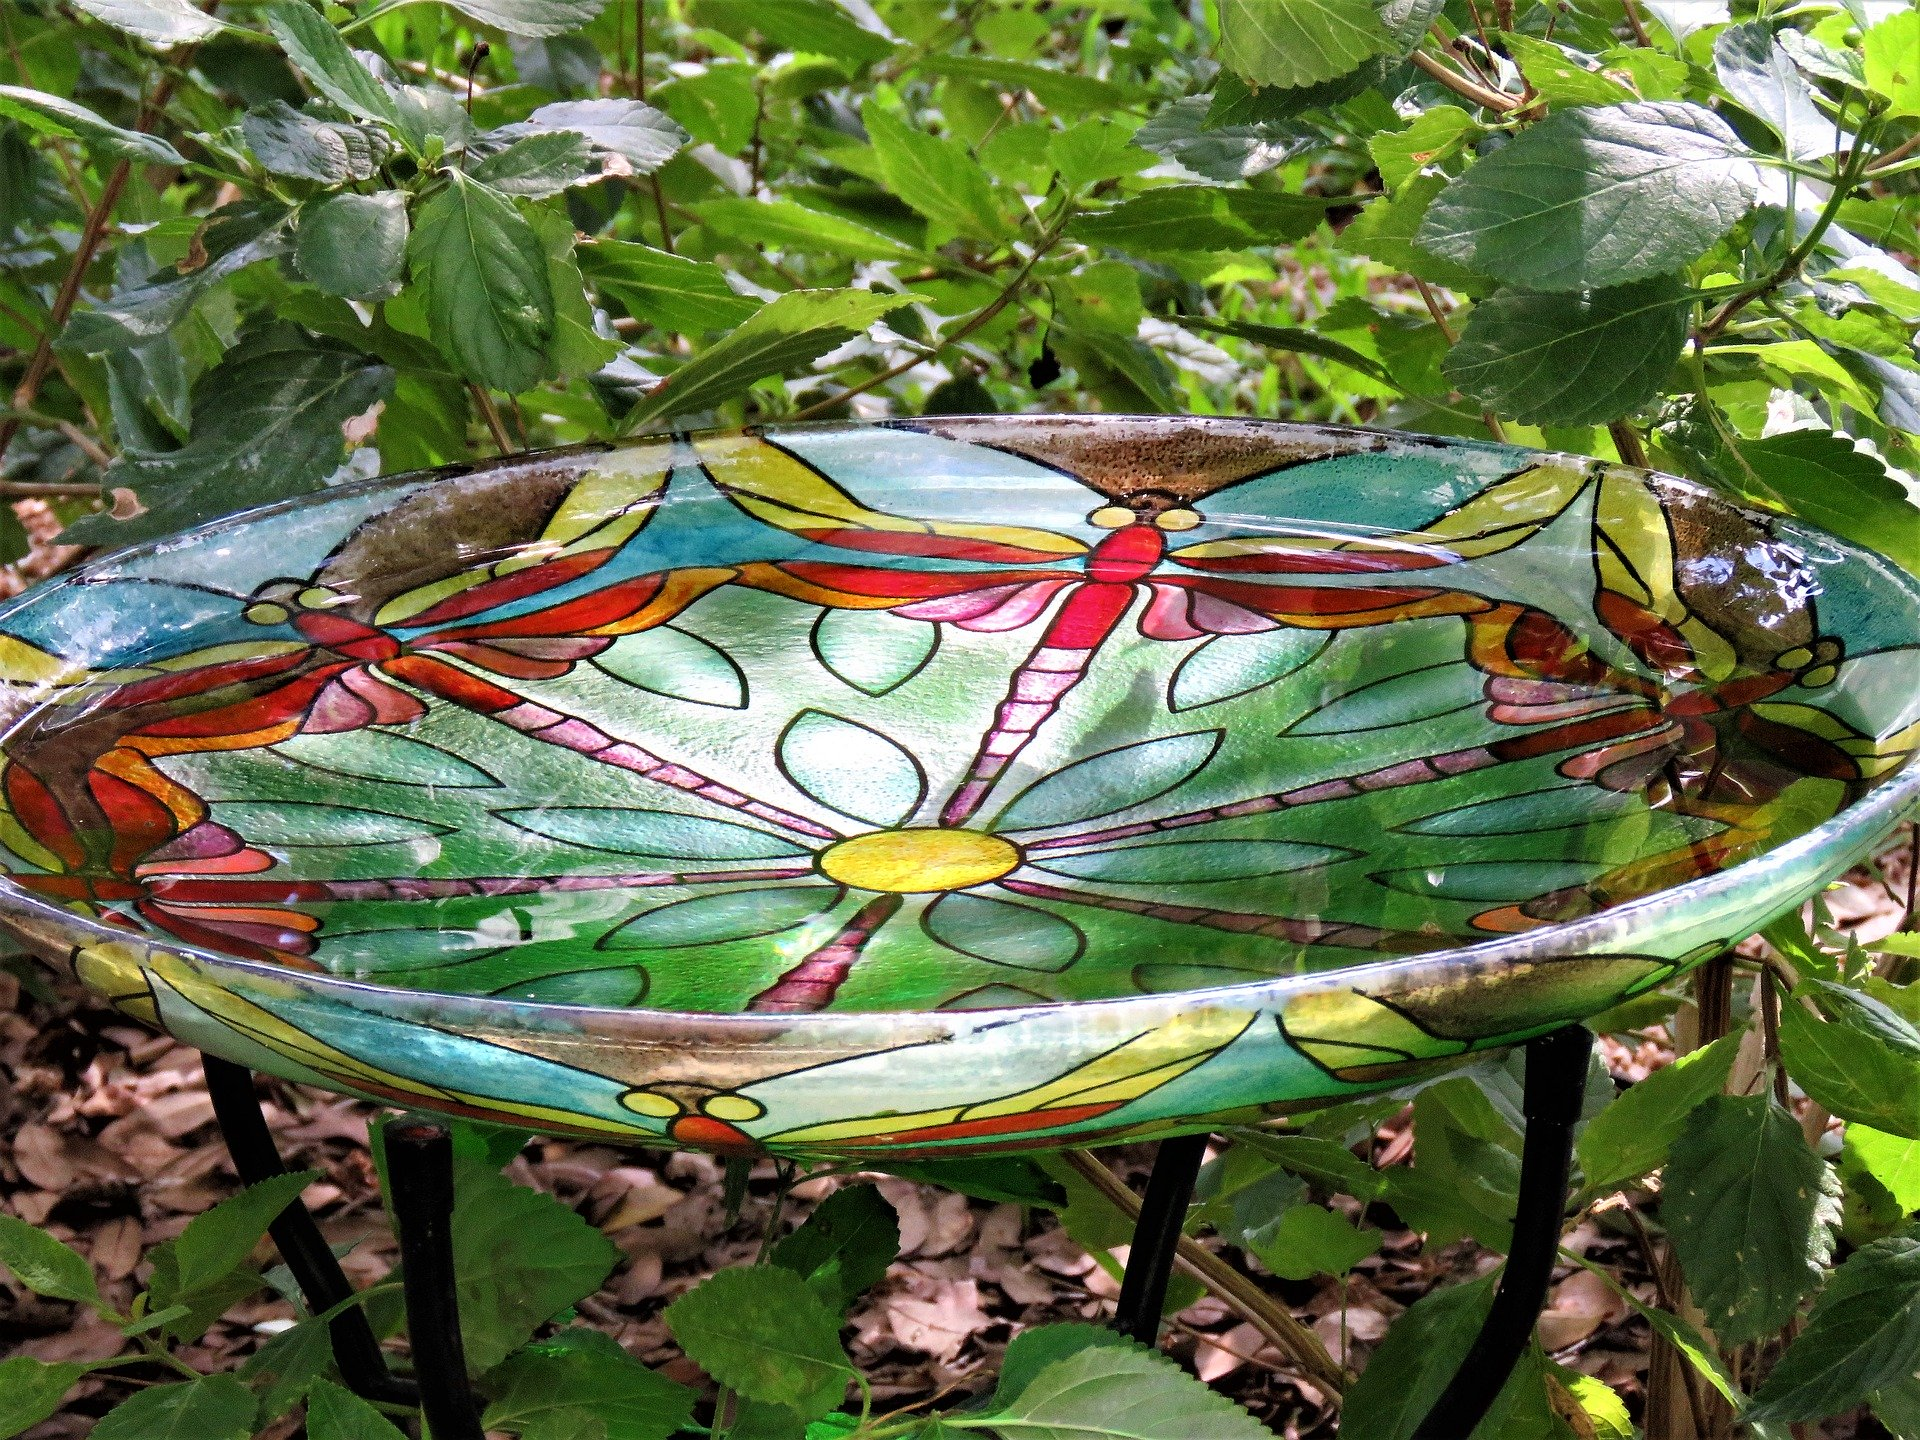 A glass dish with colourful dragonflies birdbath.